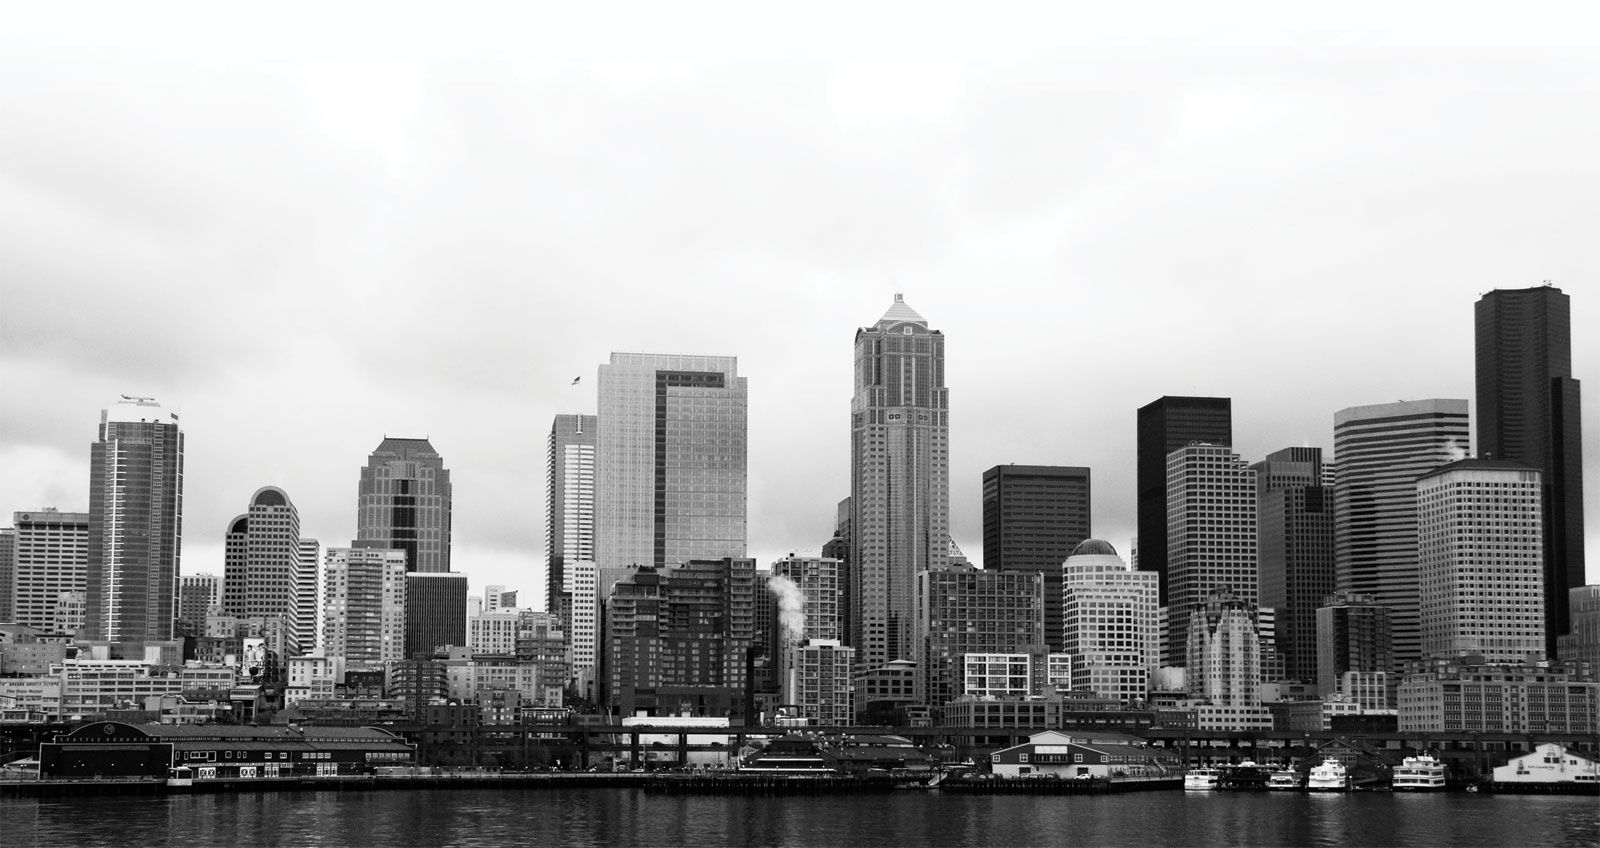 city in background